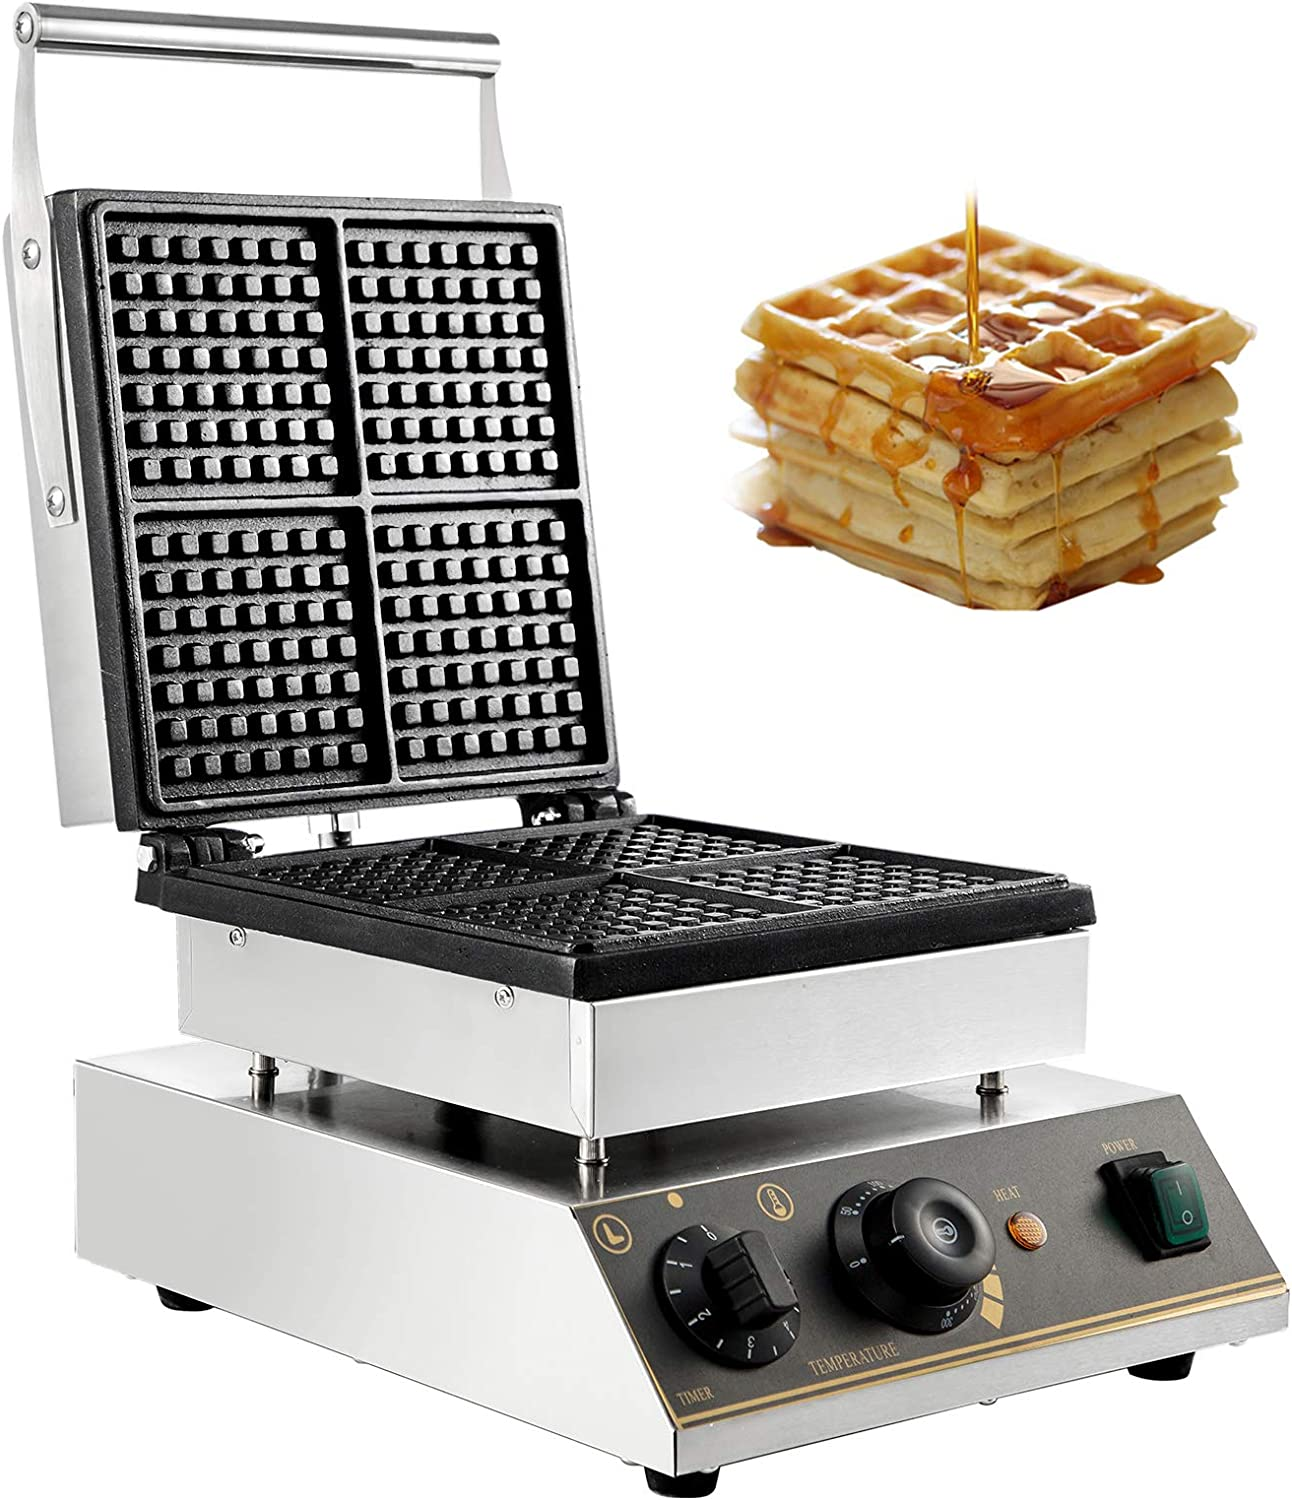 VBENLEM 110V Commercial Waffle Maker 4Pcs Nonstick 2000W Electric Waffle Machine Stainless Steel 110V Temperature and Time Control Rectangle Belgian Waffle Maker Suitable for Bakeries Snack Bar Family